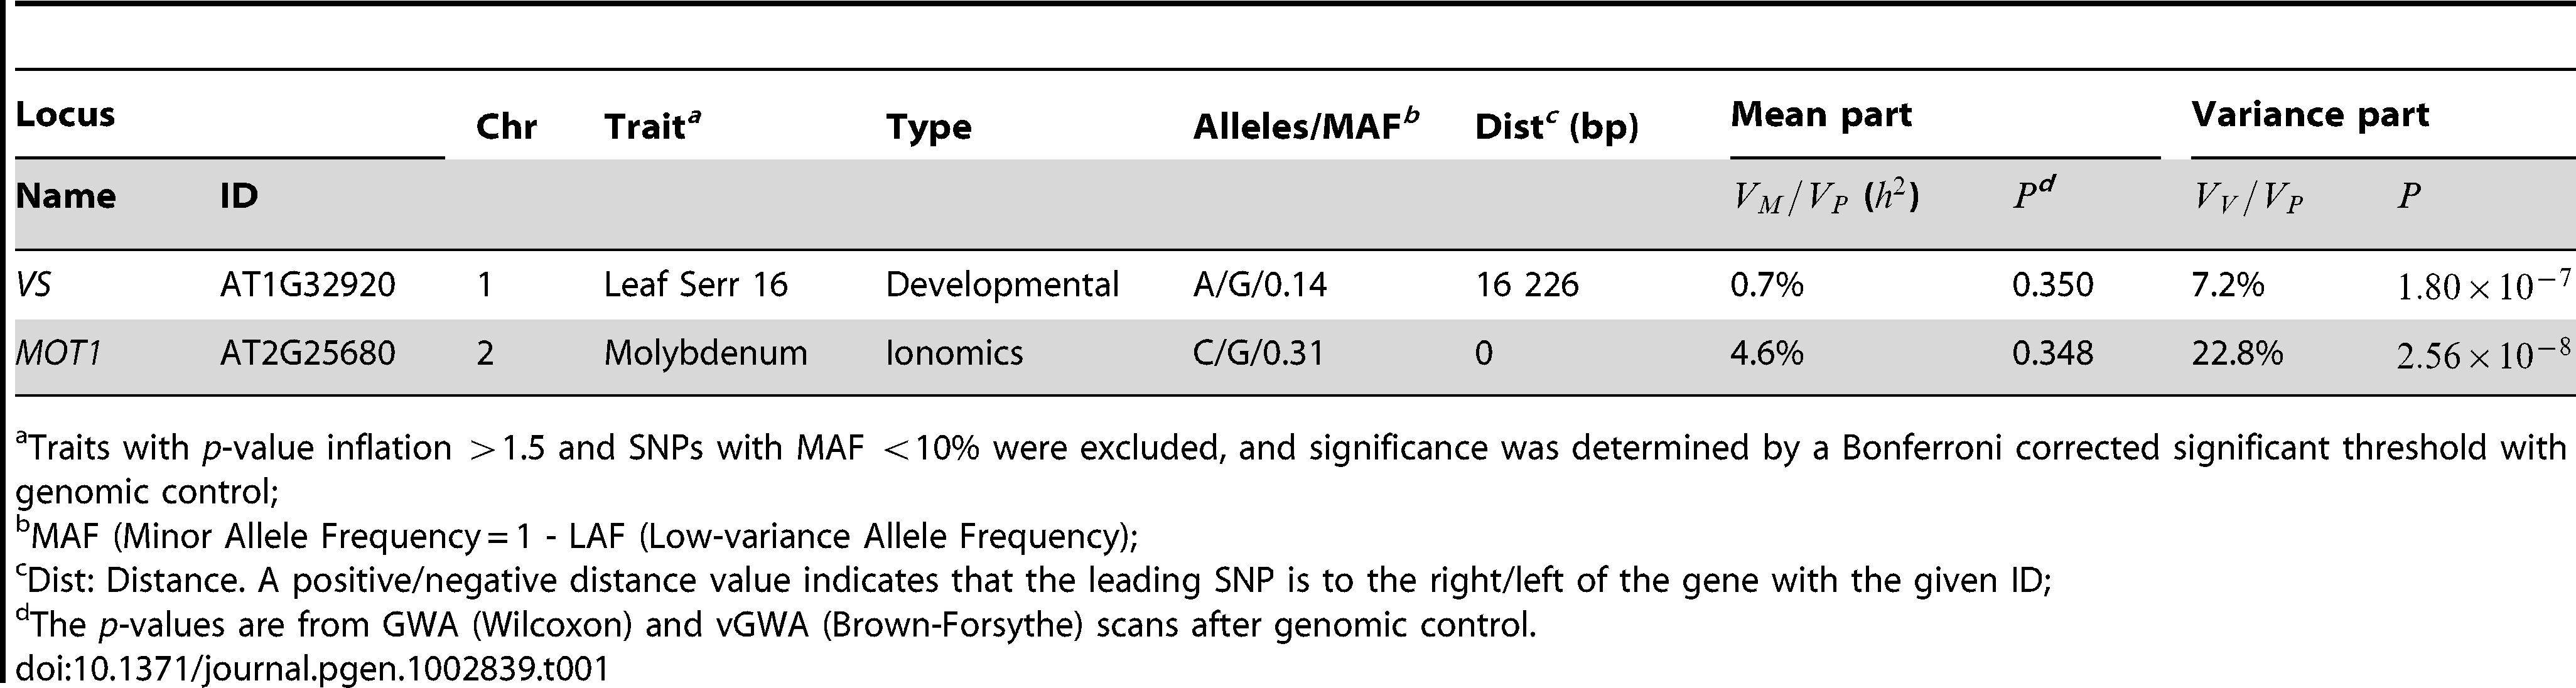 Significant variance-controlling loci in <i>Arabidopsis thaliana</i>.